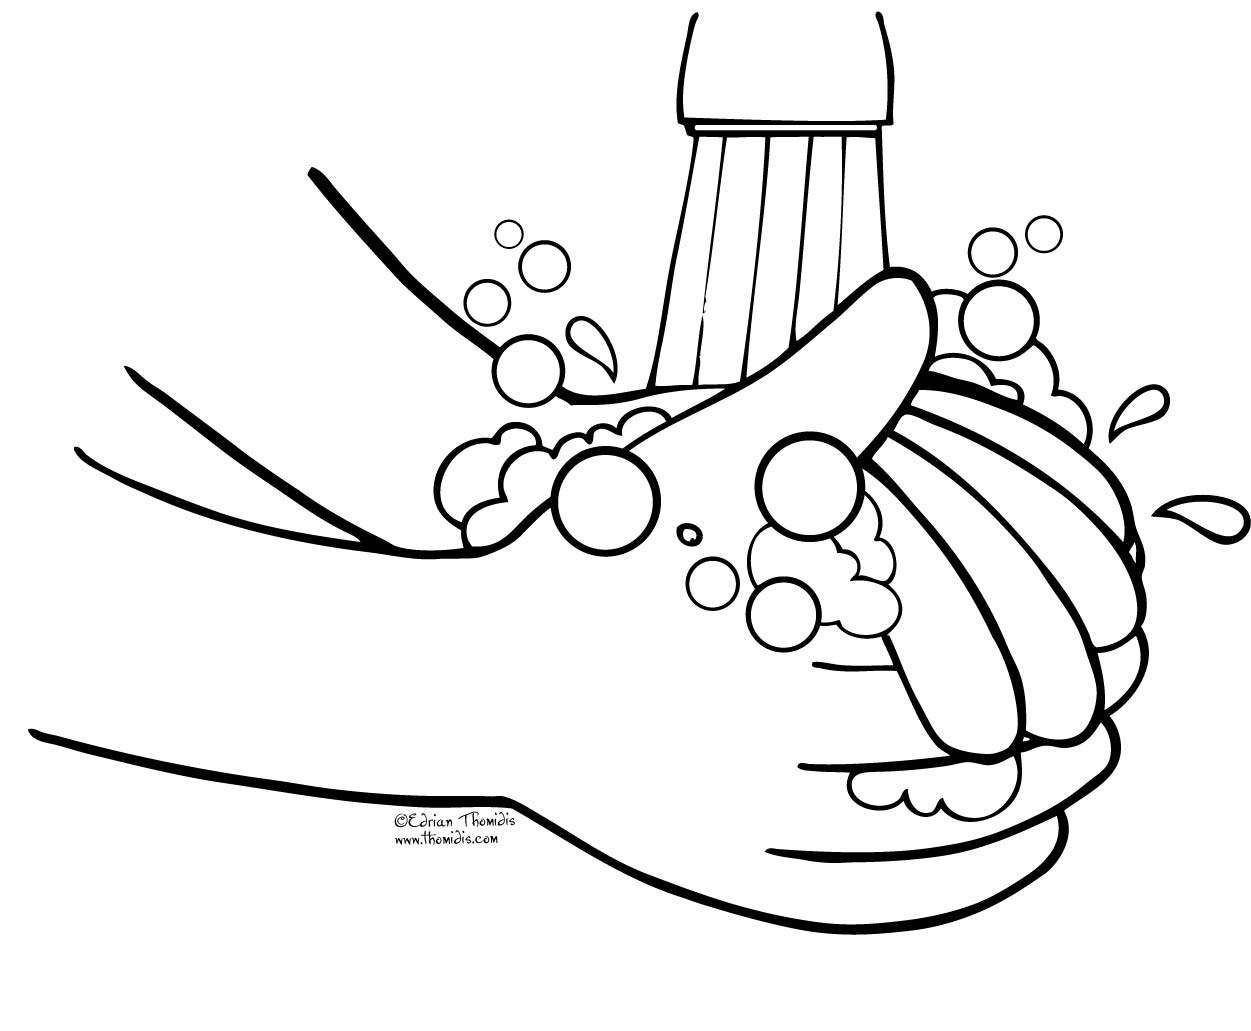 Hand Washing Drawing at GetDrawings.com | Free for personal use Hand ...